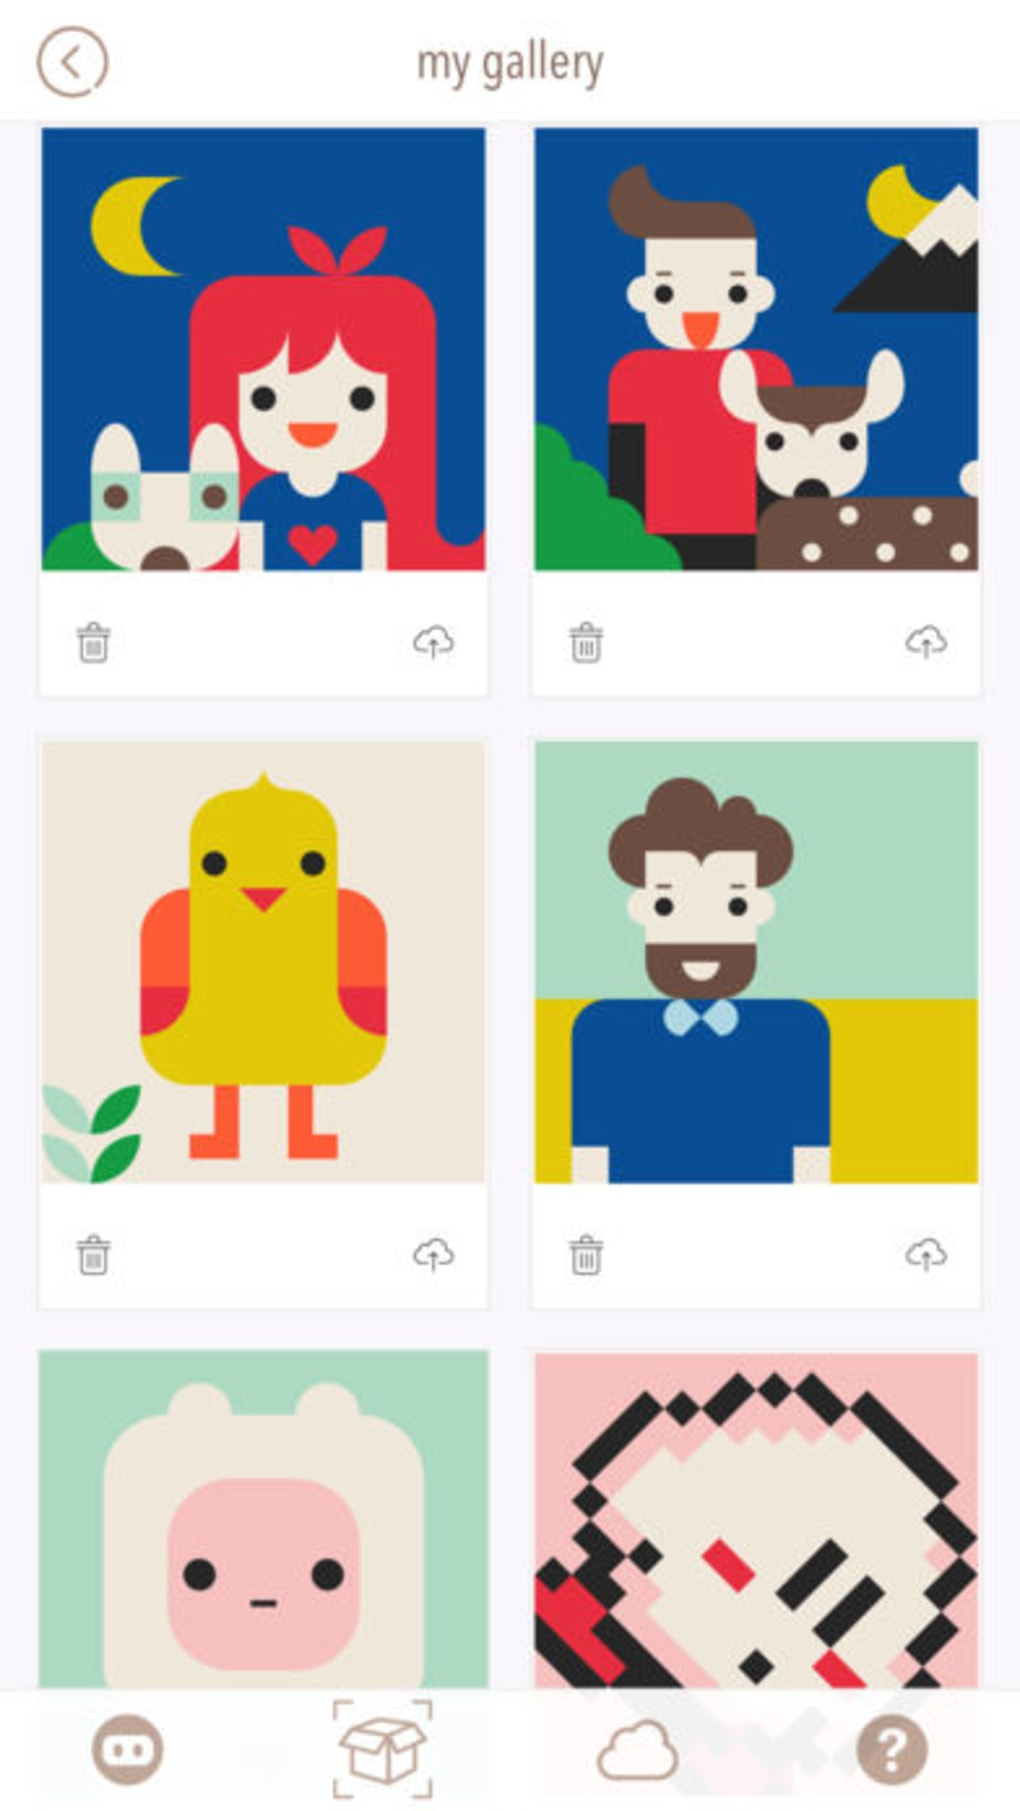 New Pixels for iPhone - Download